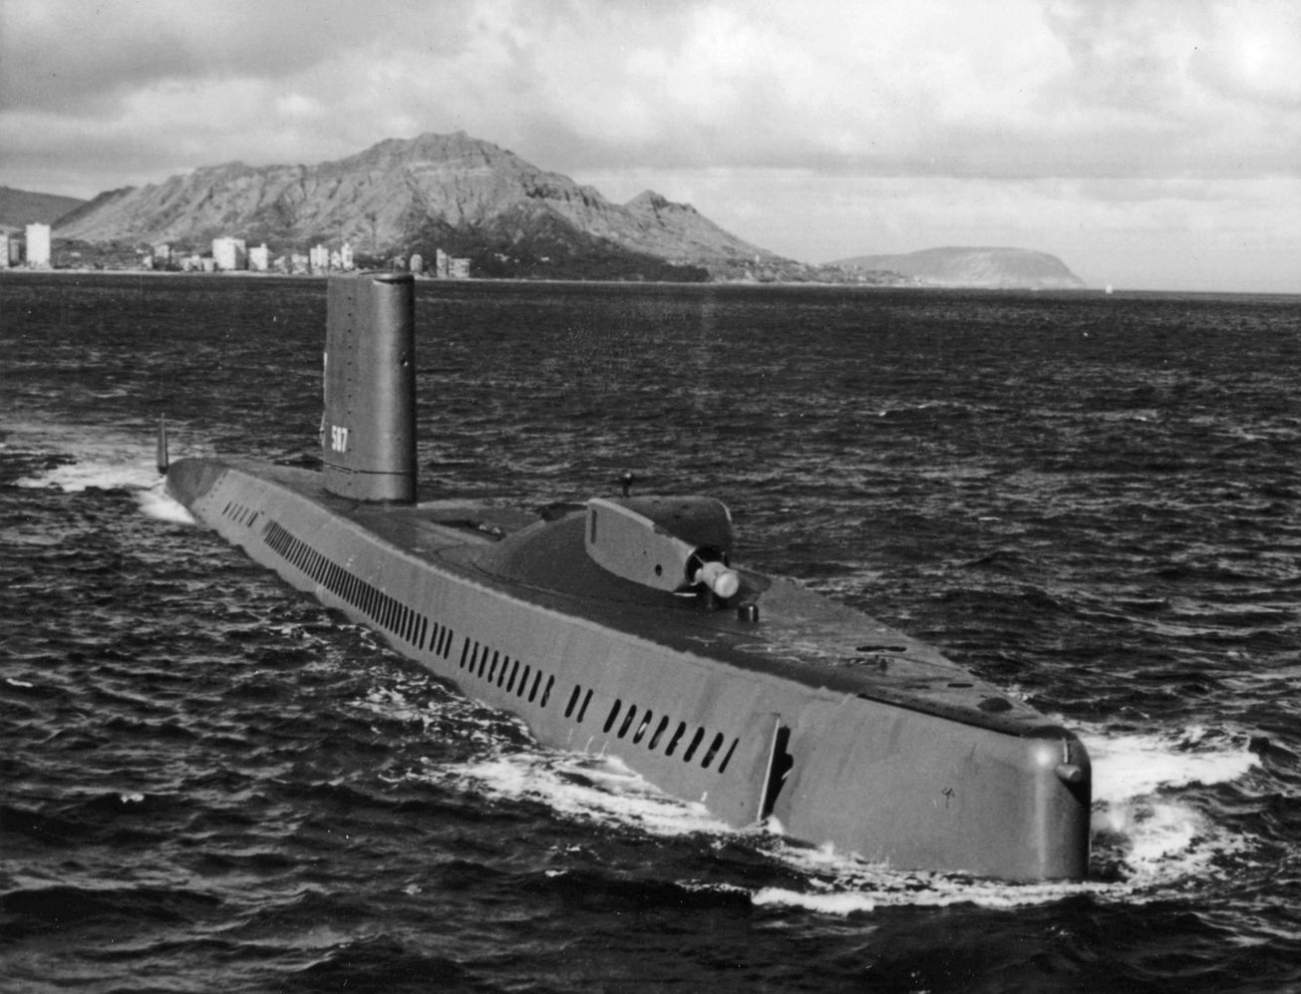 Russia Feared This Submarine More Than Any Other